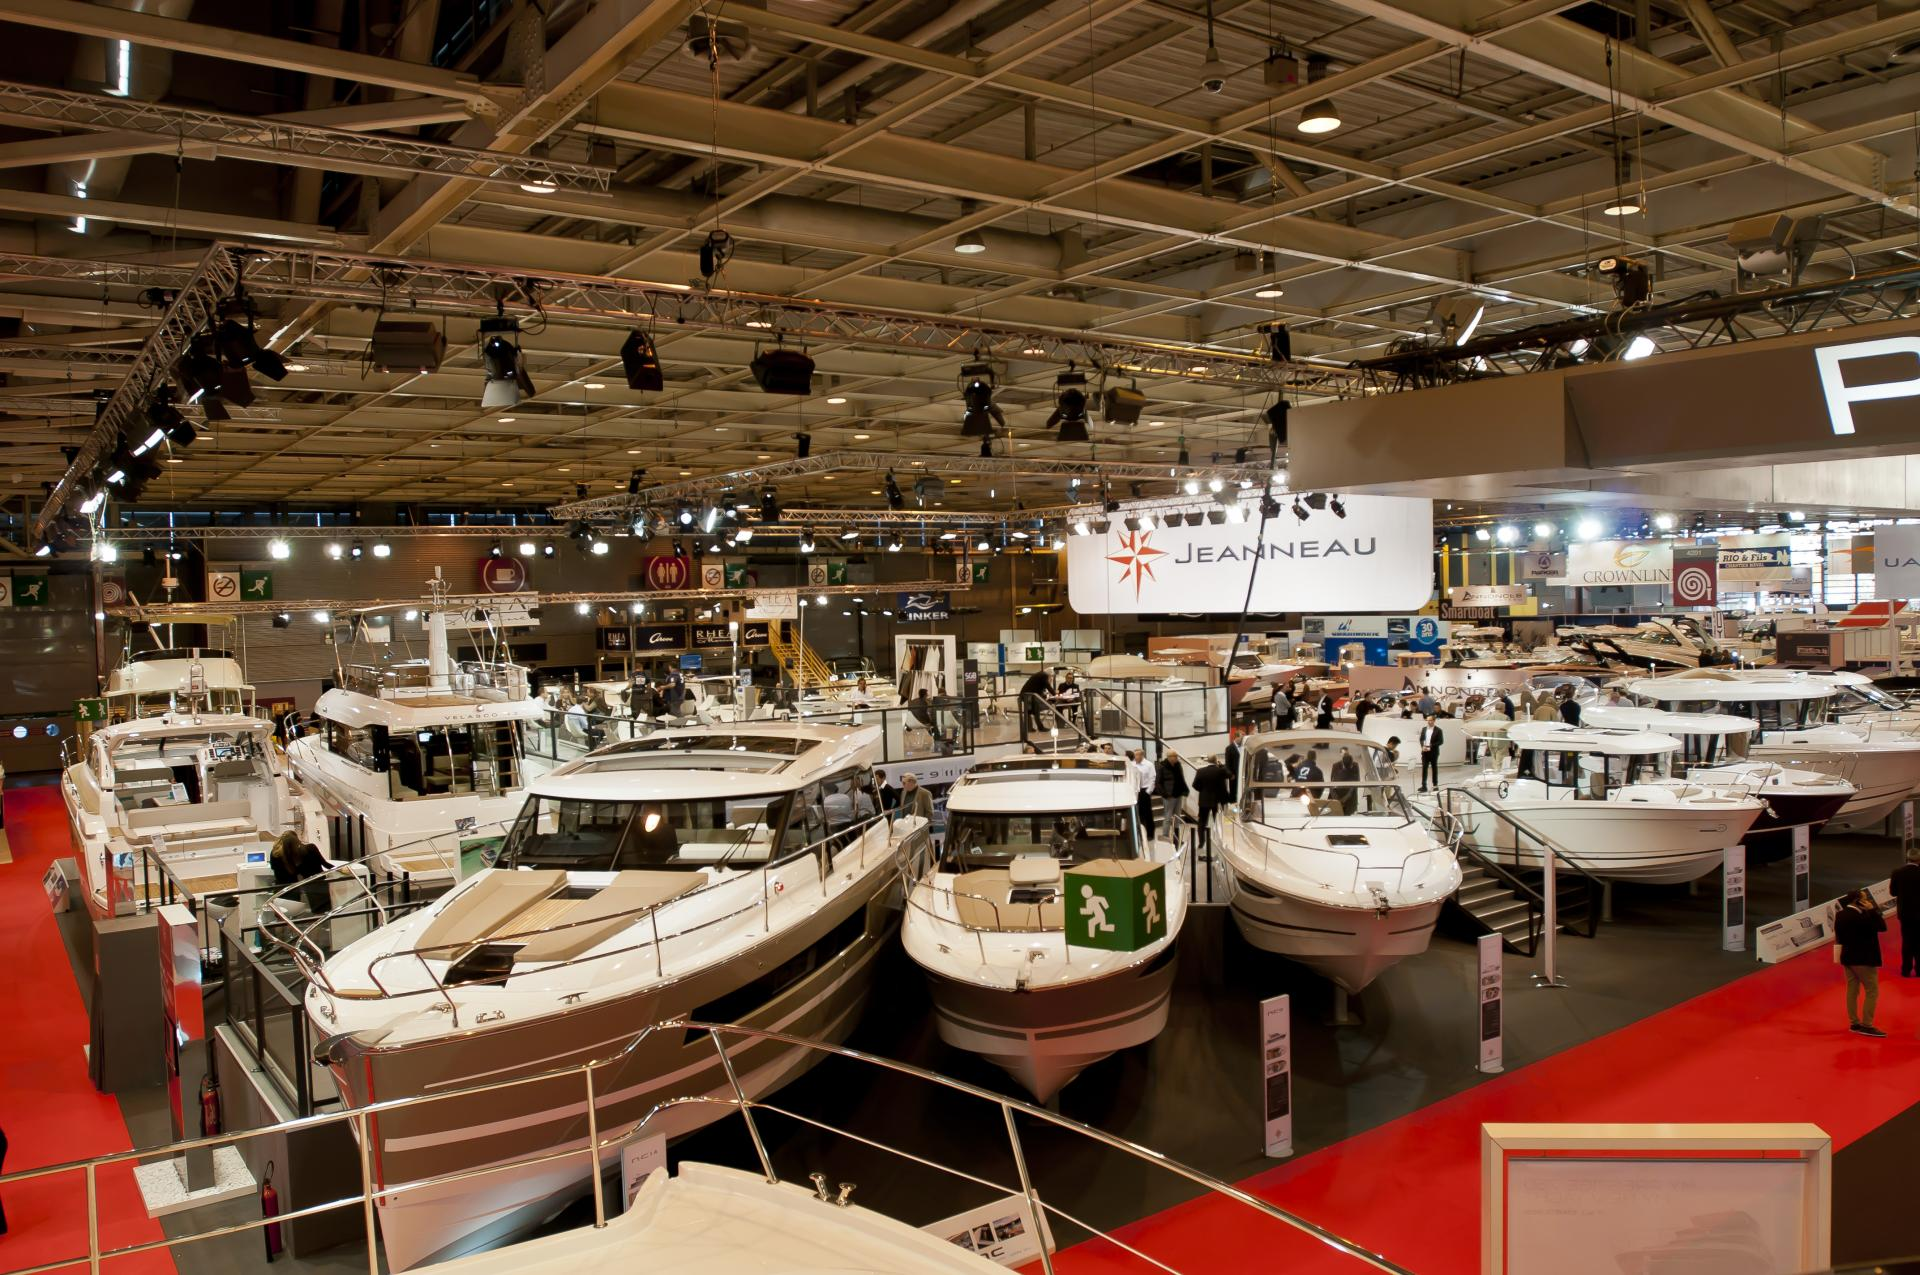 Bapt me du nouveau leader 40 au salon nautique de paris - Salon de the paris 13 ...